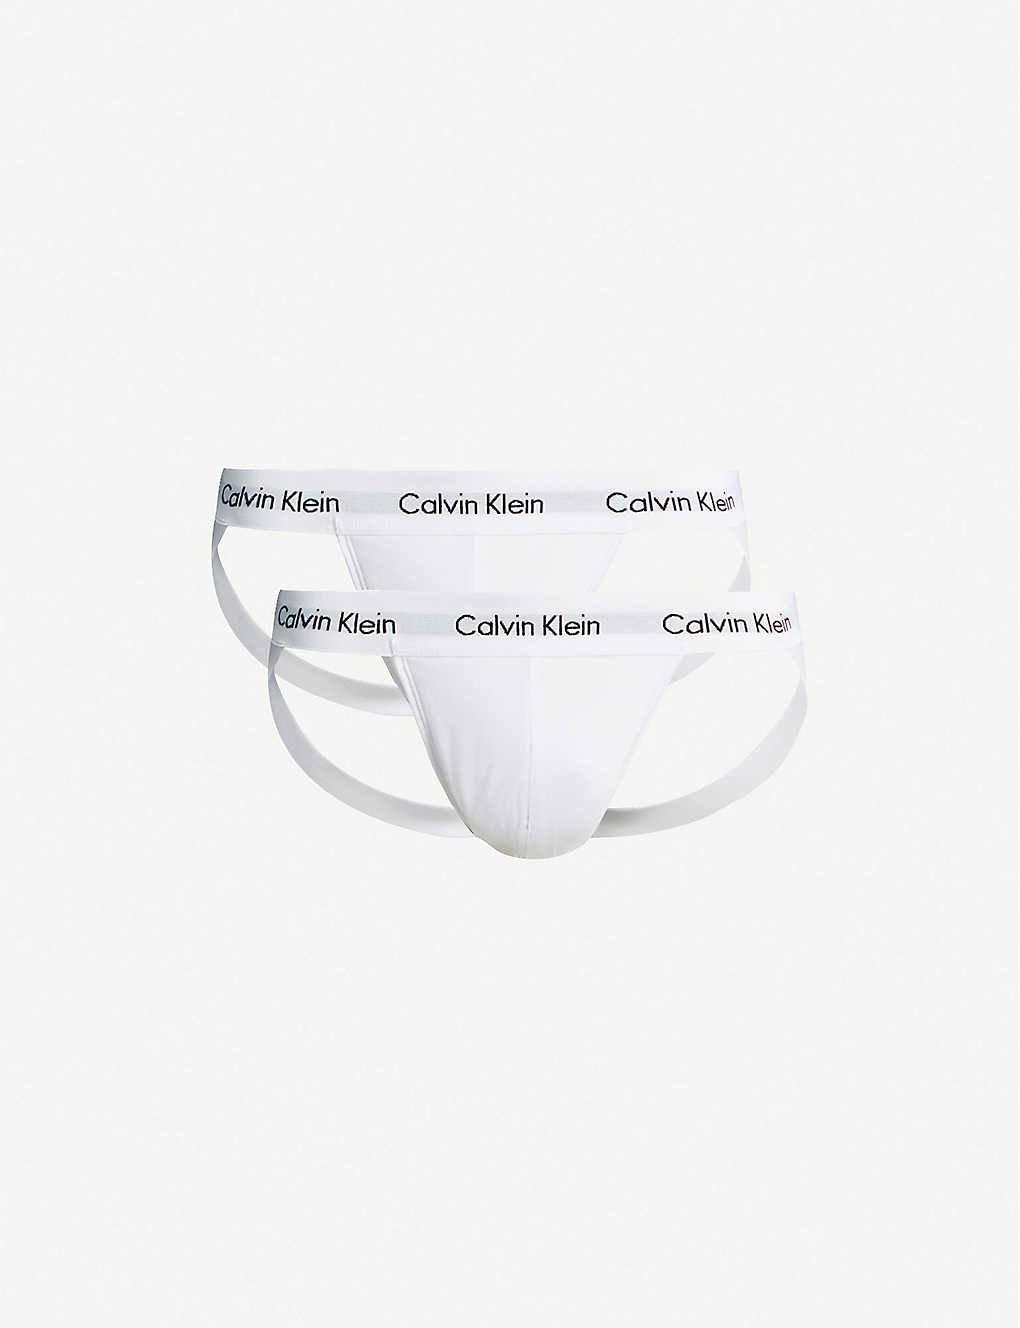 CALVIN KLEIN: Logo-embellished stretch-cotton jockstraps pack of two